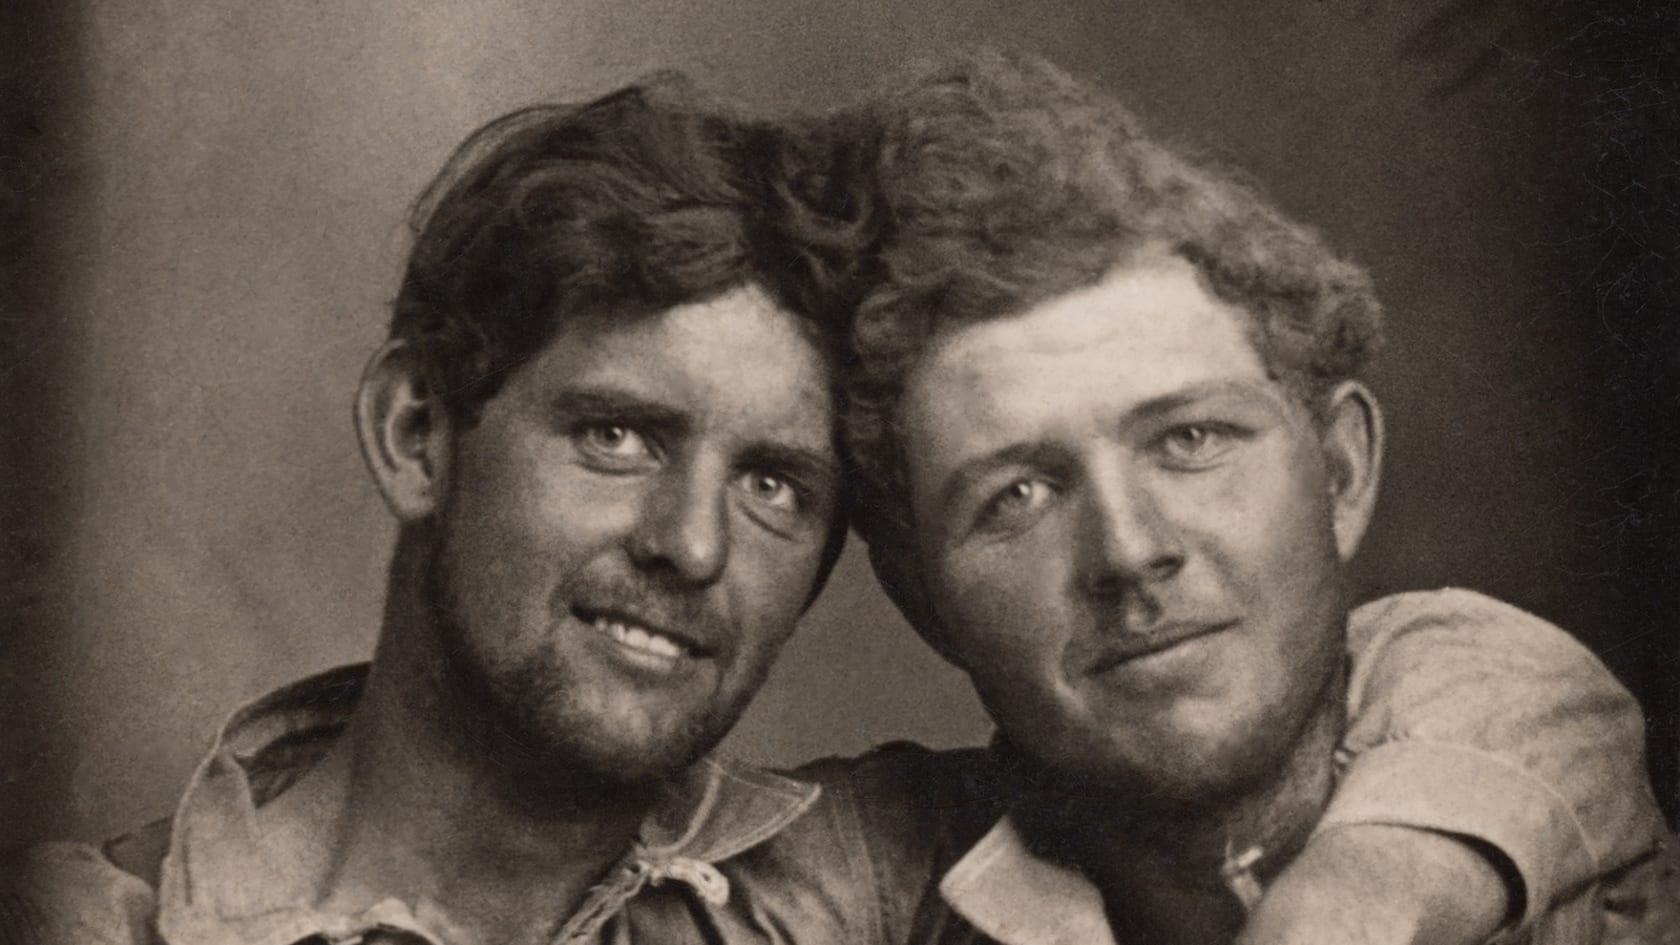 'Loving' Reasserts That Queerness Has Always Existed, Amiss From Our Hetero-Normative Gaze!